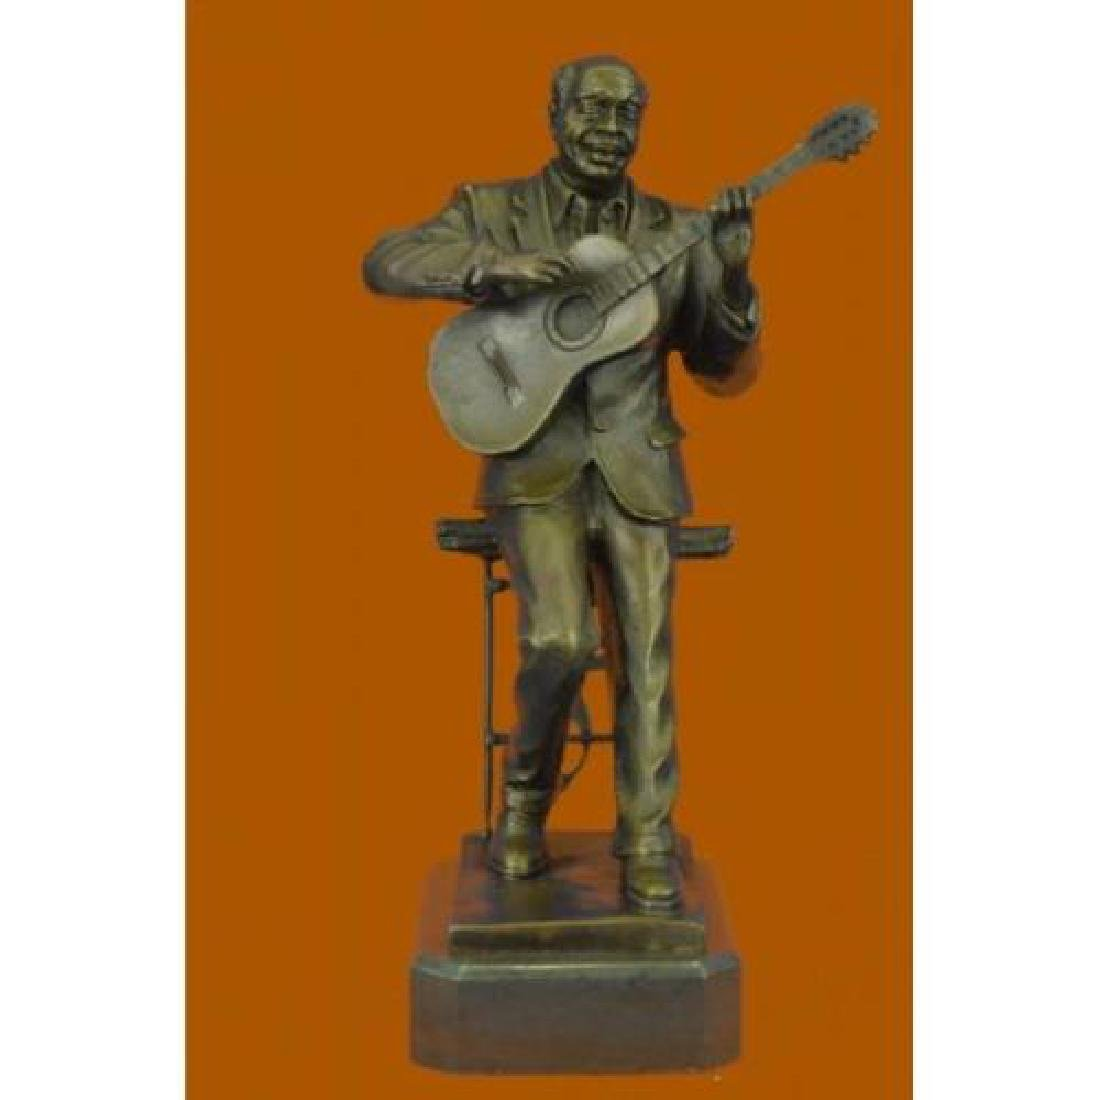 Guitar Player Bronze Statue on Marble Base Sculpture